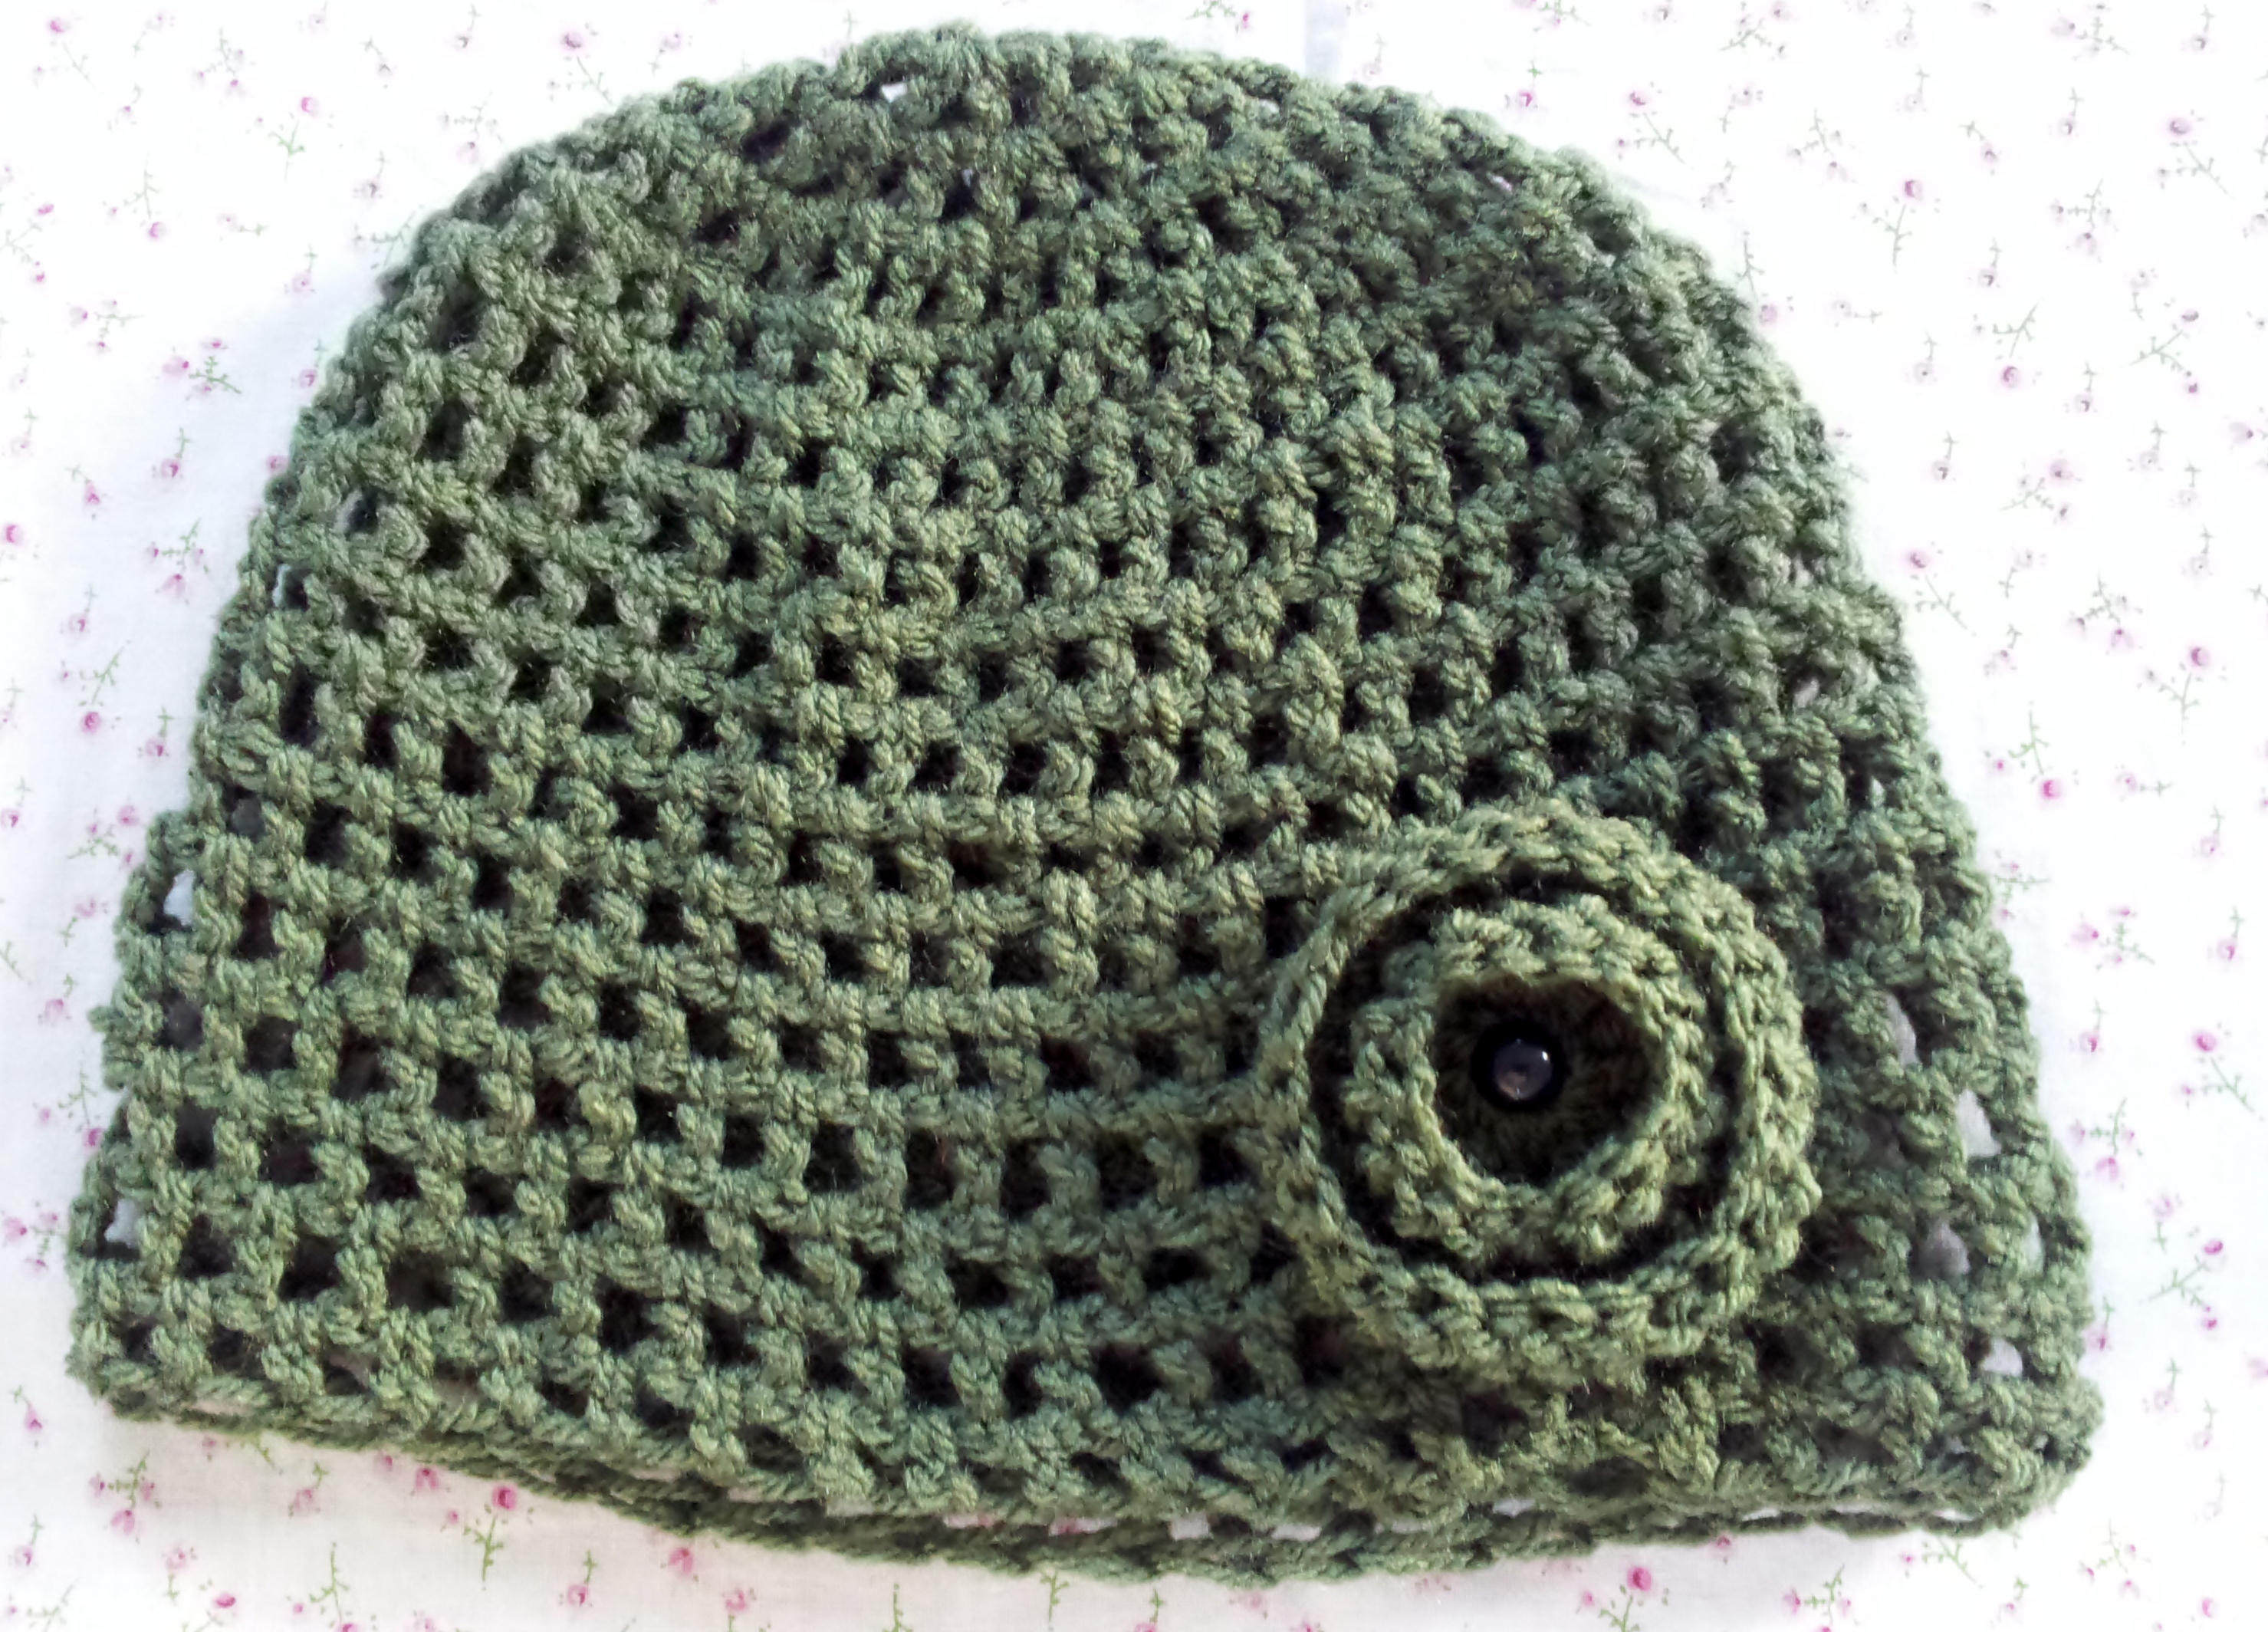 Easy Crochet Flower Hat Pattern : How to make a Simple Crochet Hat ? Free Pattern ...